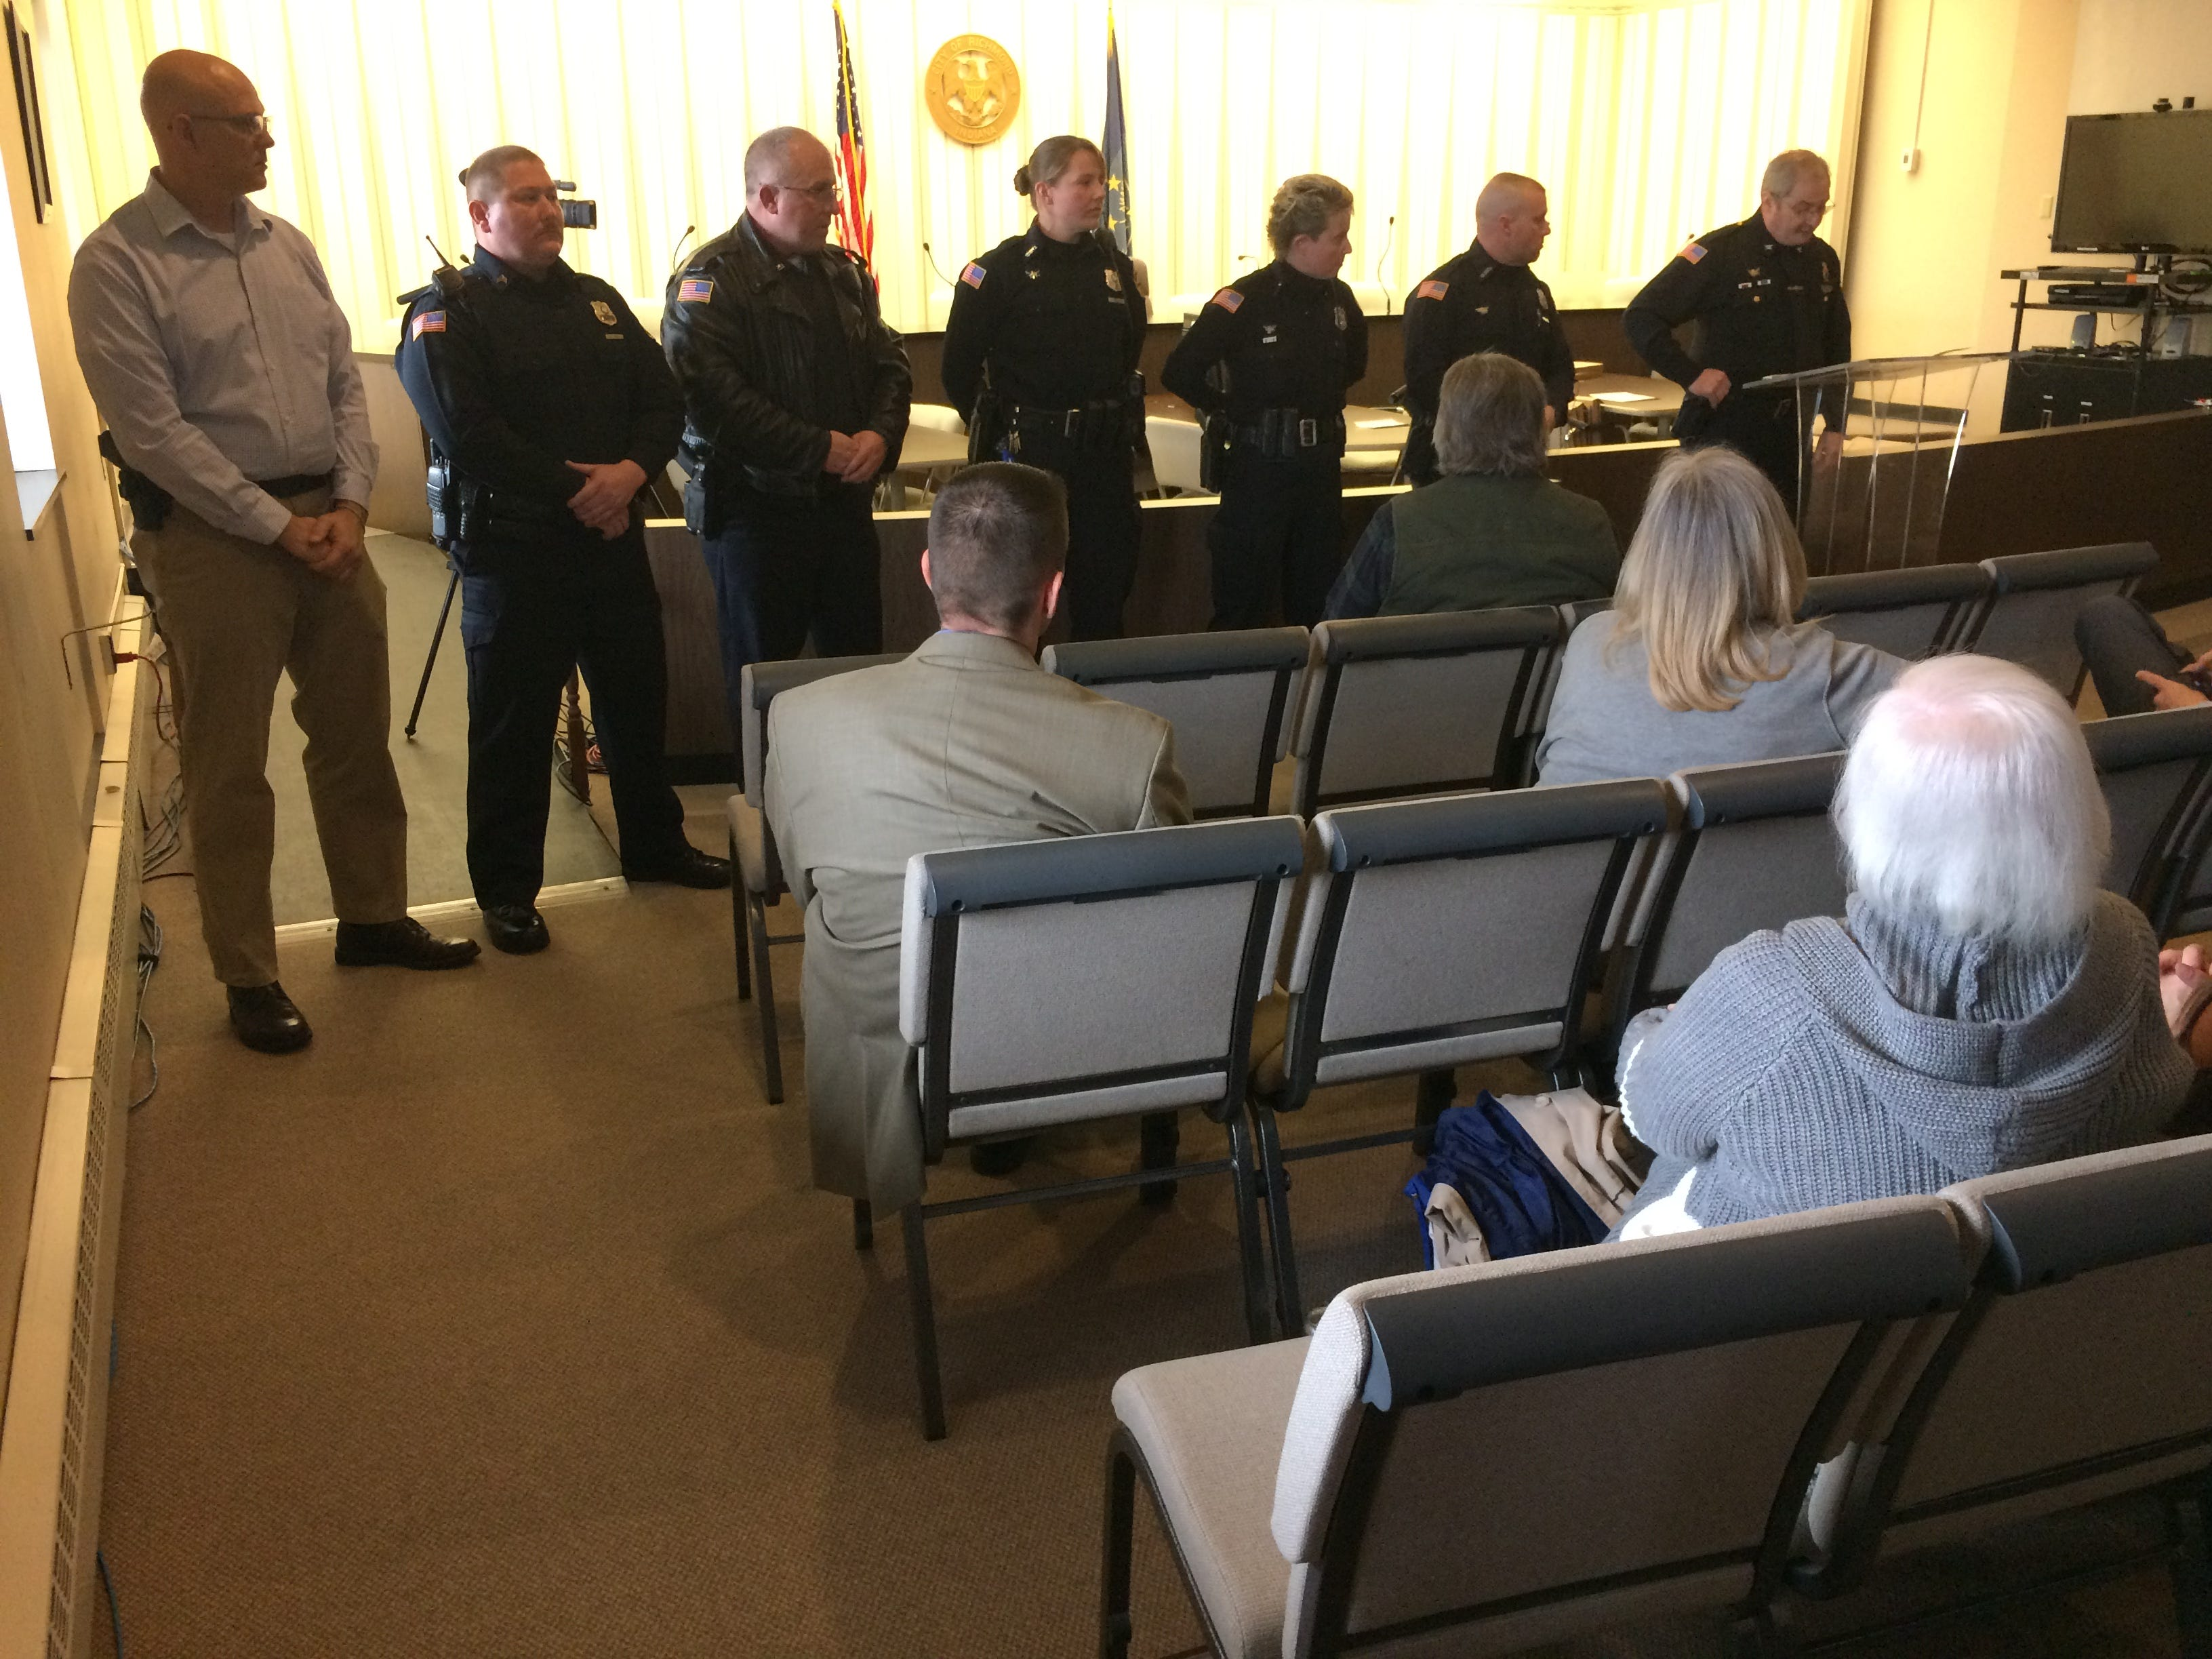 Richmond Police Department's Detective Neal VanMiddlesworth, Sgt. Andrew Jury, Officer Randy Ruhl, Officer Renee Ware, Officer Ami Miller and Officer Mike Black were awarded Police Stars on Monday. They listen to Chief Jim Branum talk about the awards.